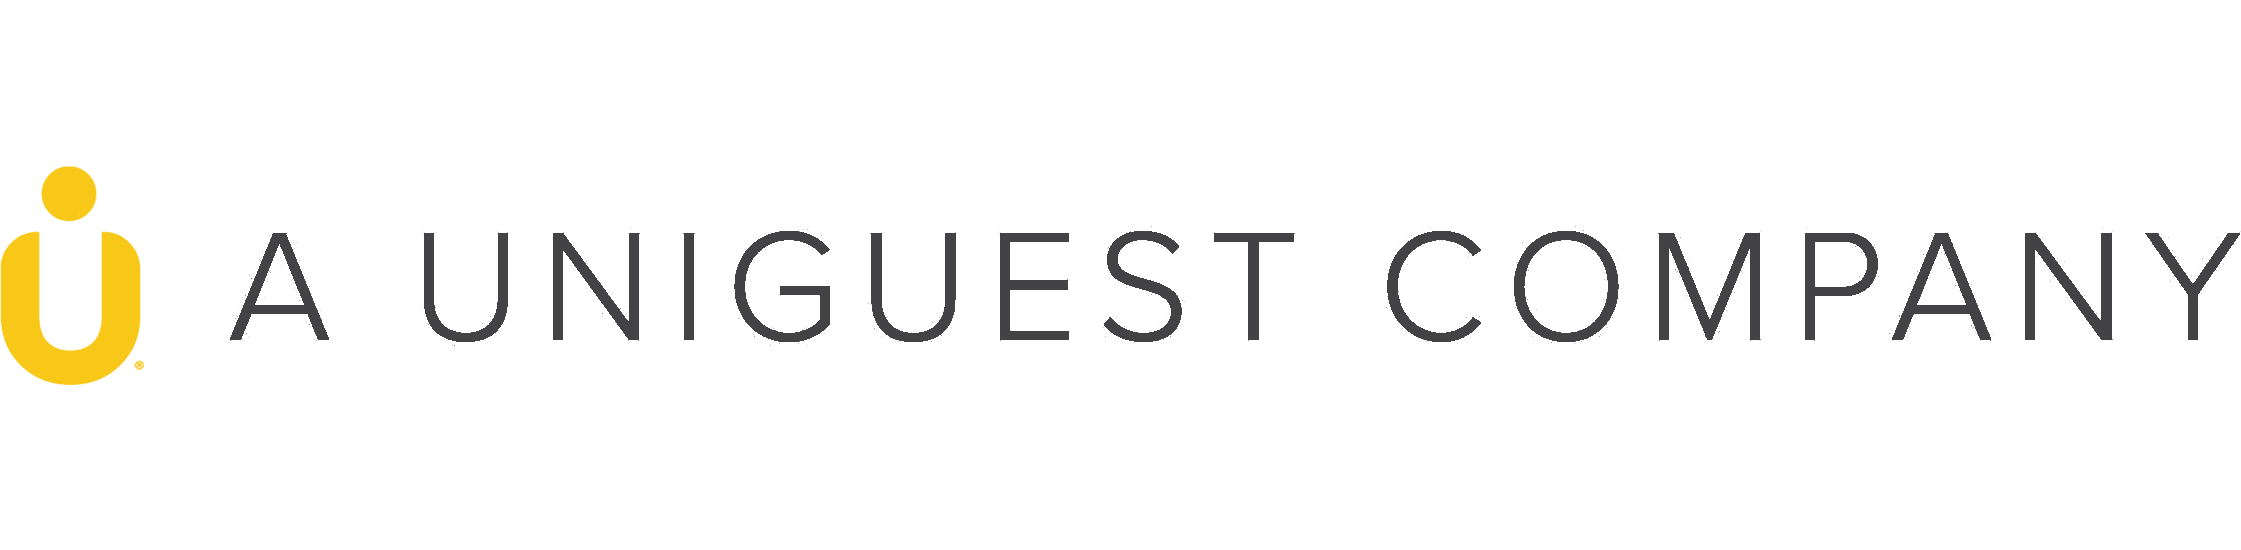 A Uniguest Company